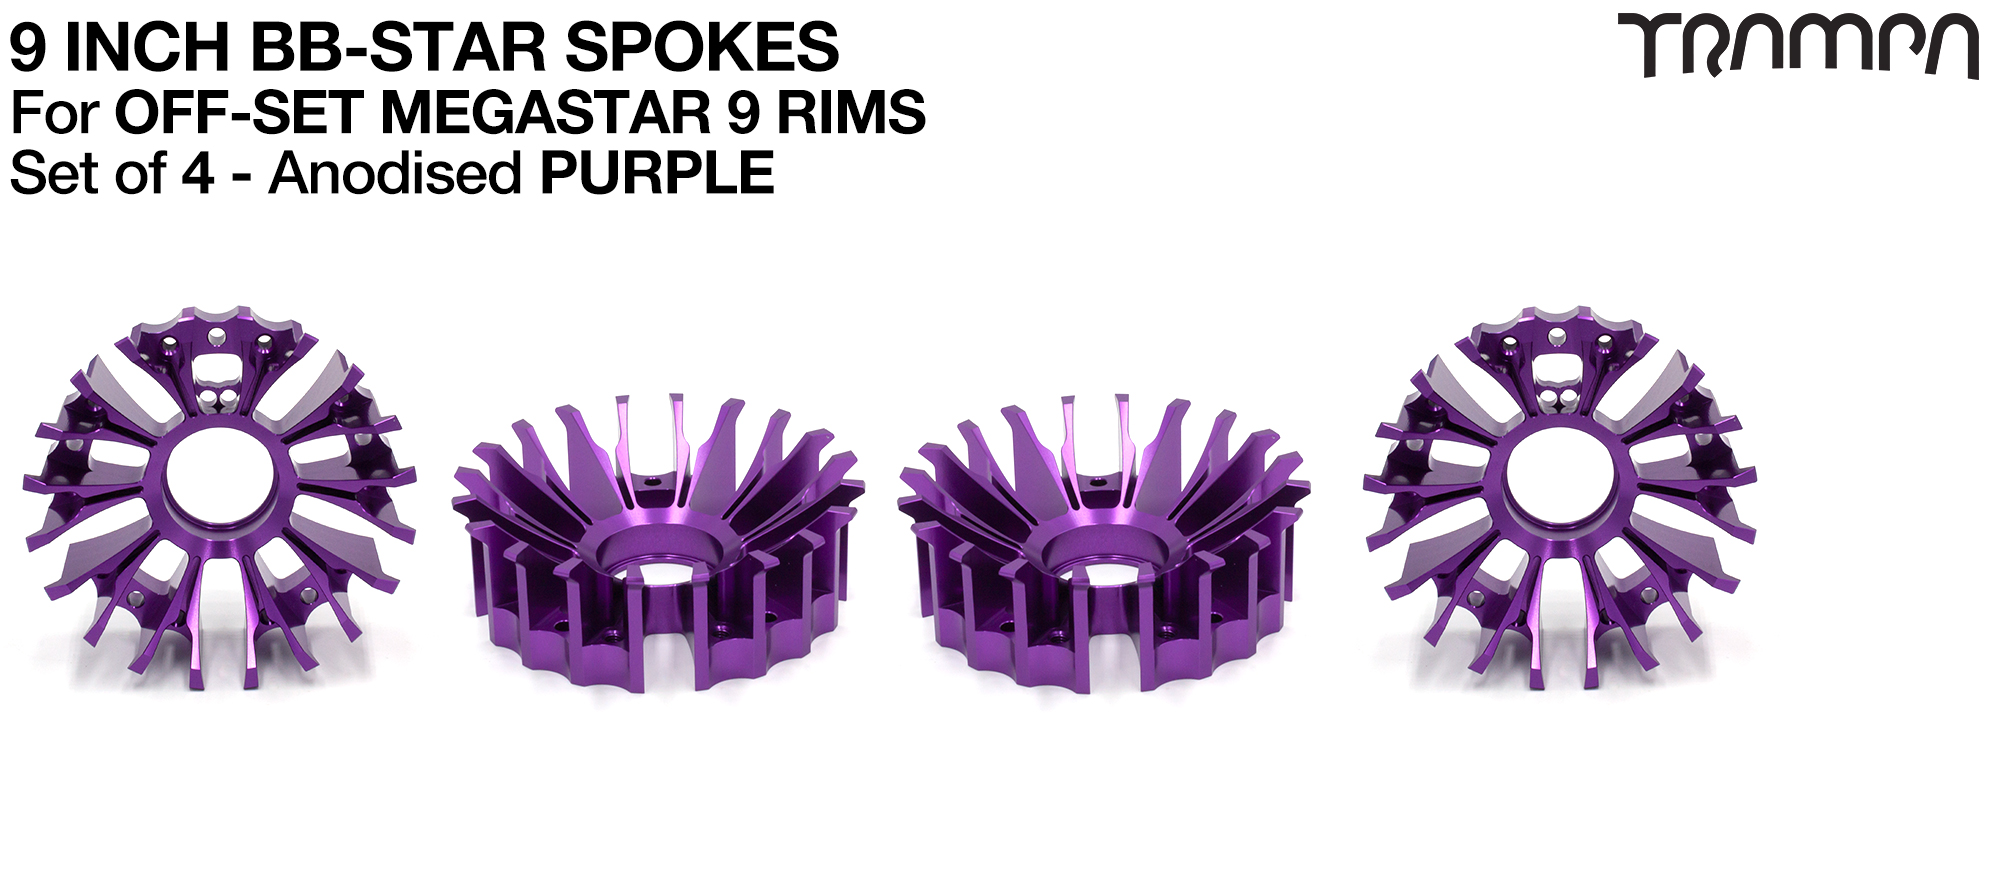 BBStar Spoke for SUPERSTAR or any size MEGASTAR rims - Extruded T6 Aluminium Heat treated & CNC Precision milled -  PURPLE